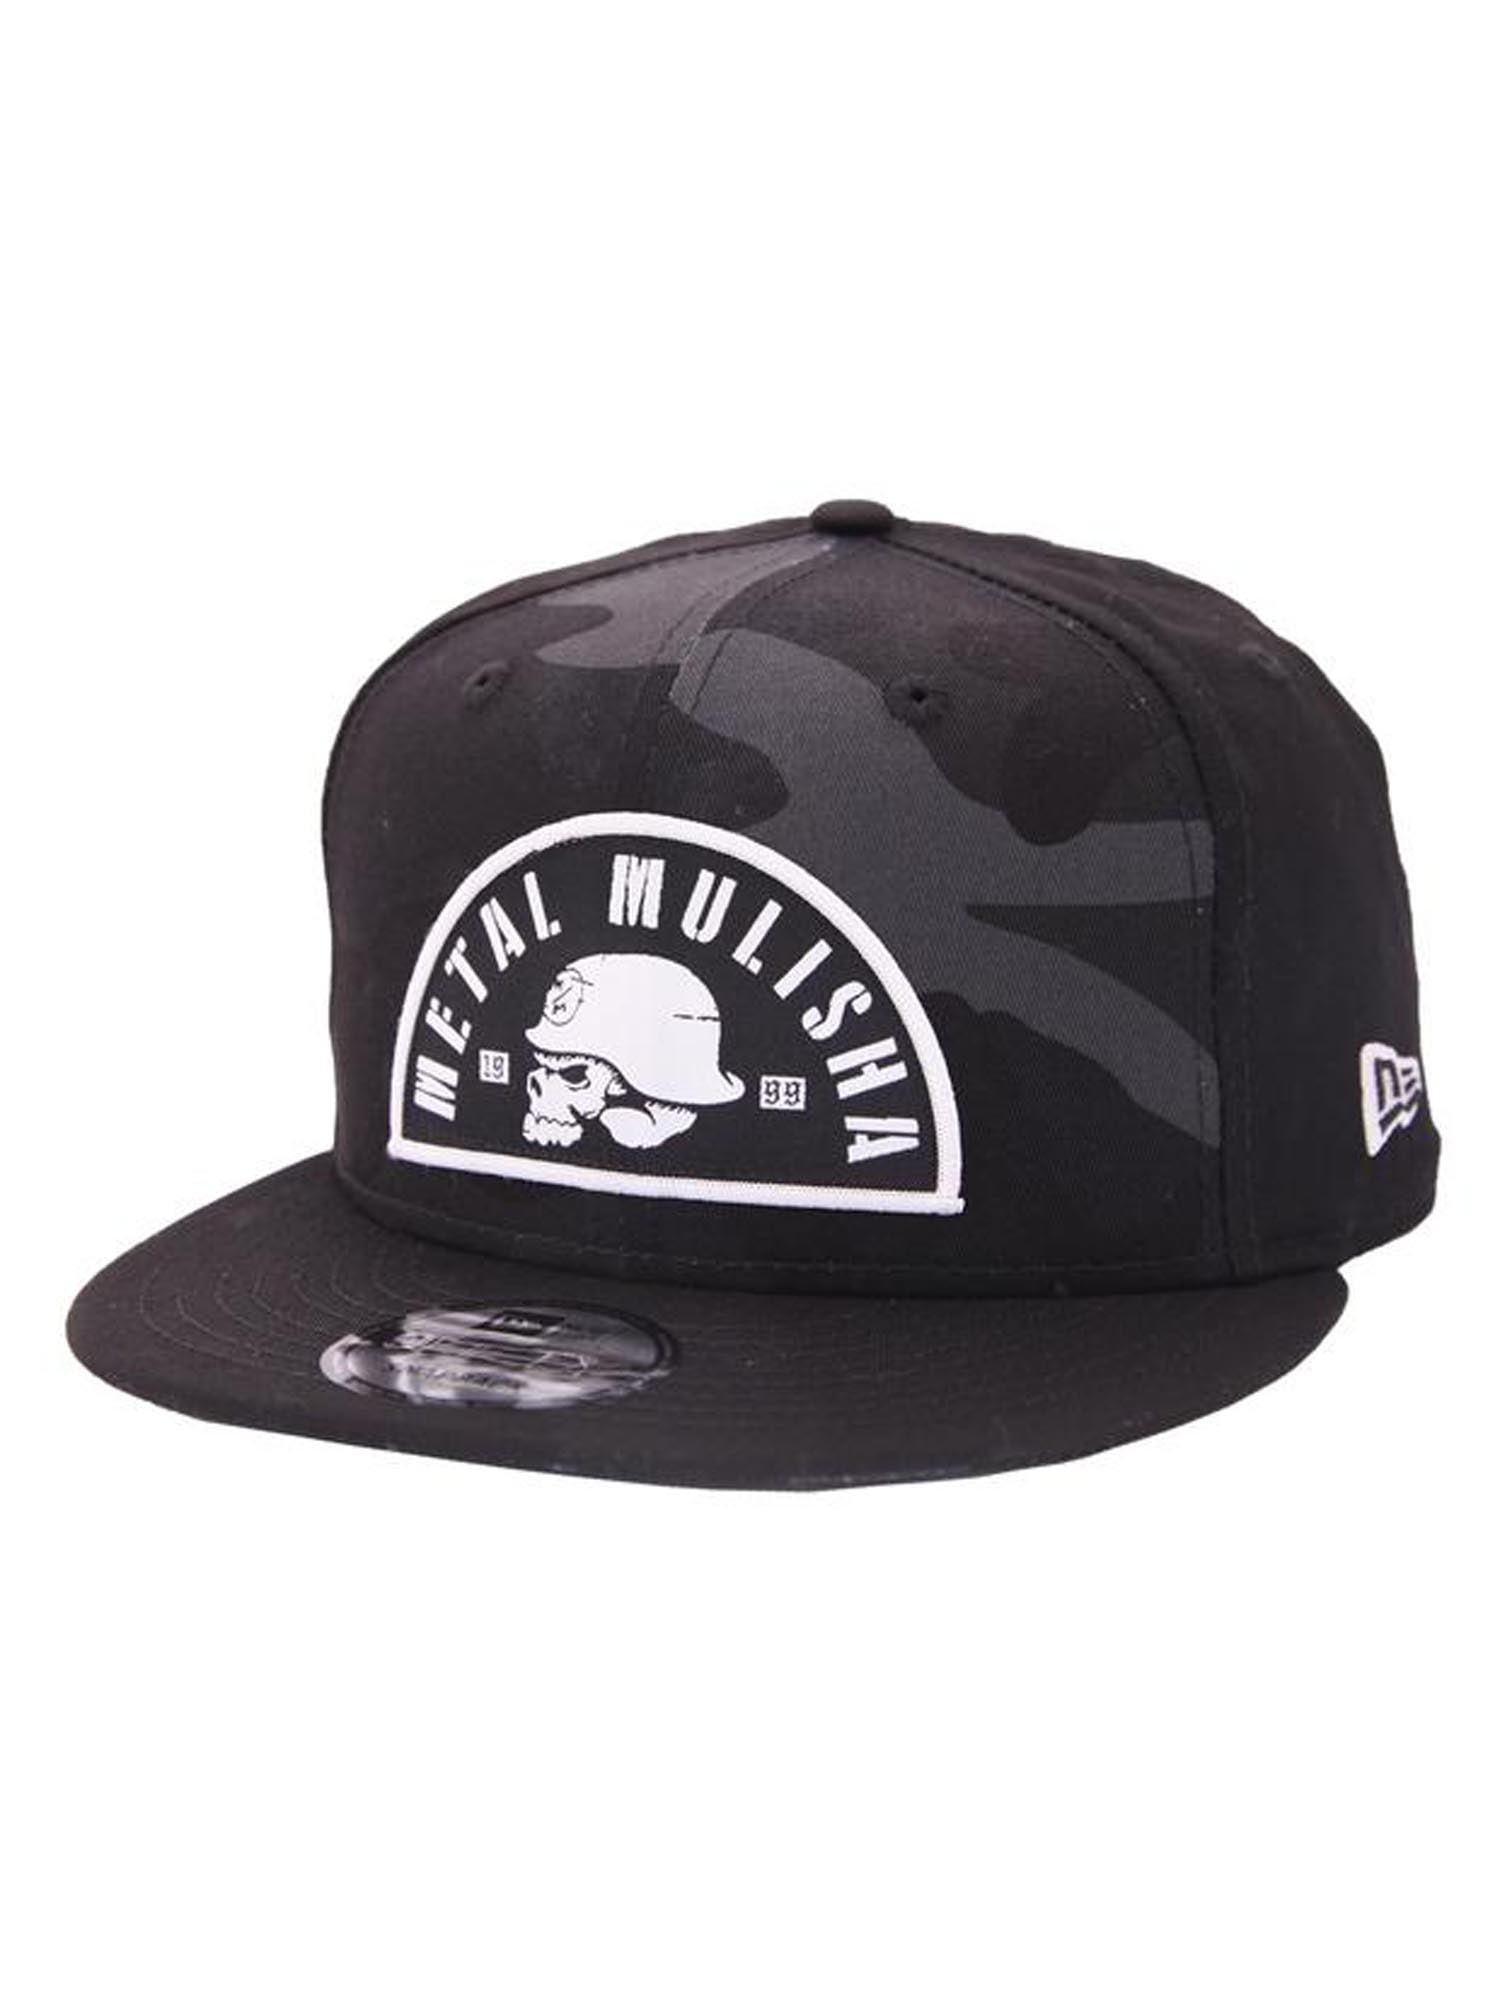 Metal Mulisha Men s Dusk New Era Snapback Hat Camo Skull and Helmet ... ab56b38bf5b5